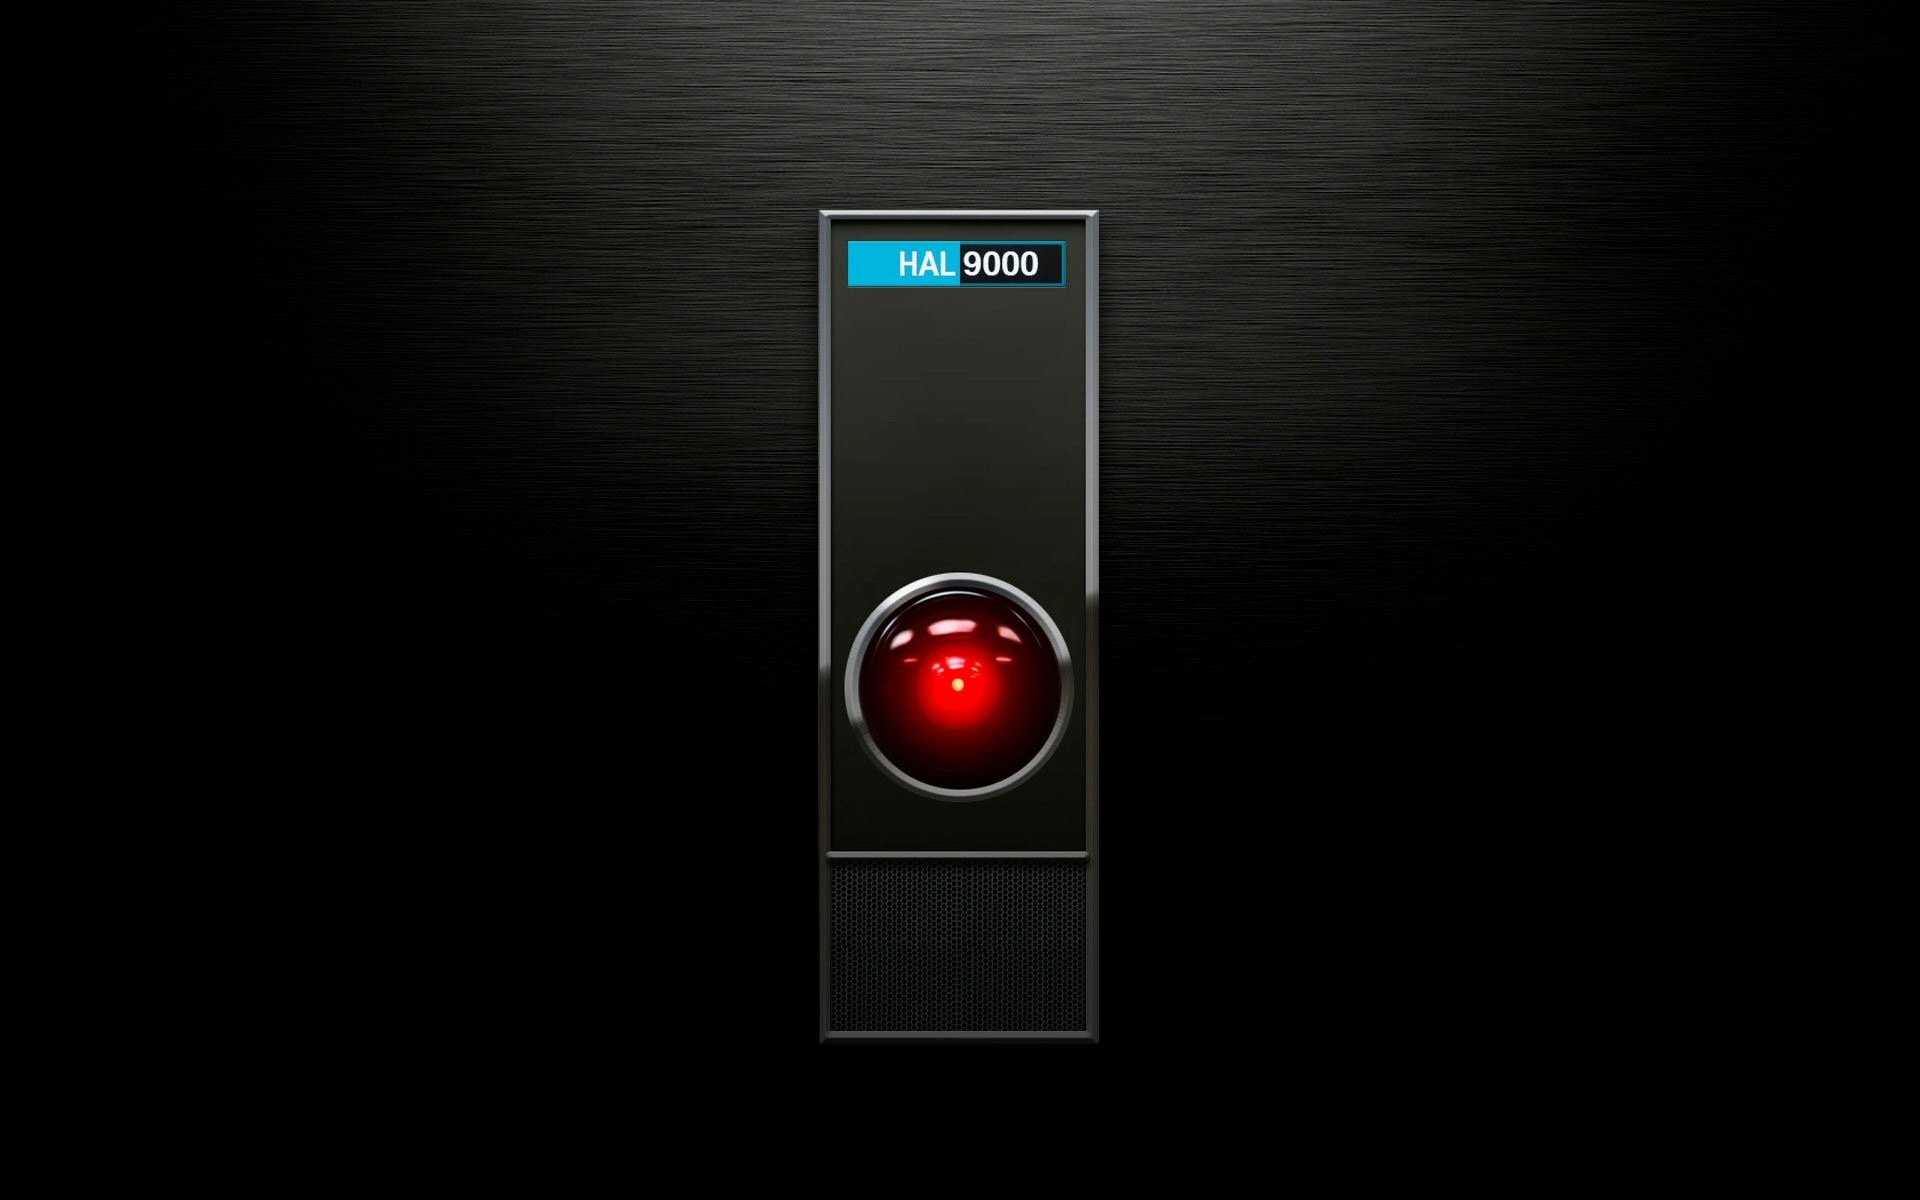 1920x1200 hal 9000 hd wallpaper - photo #8. The Dirtiest Corvette Ever jalopnikcom